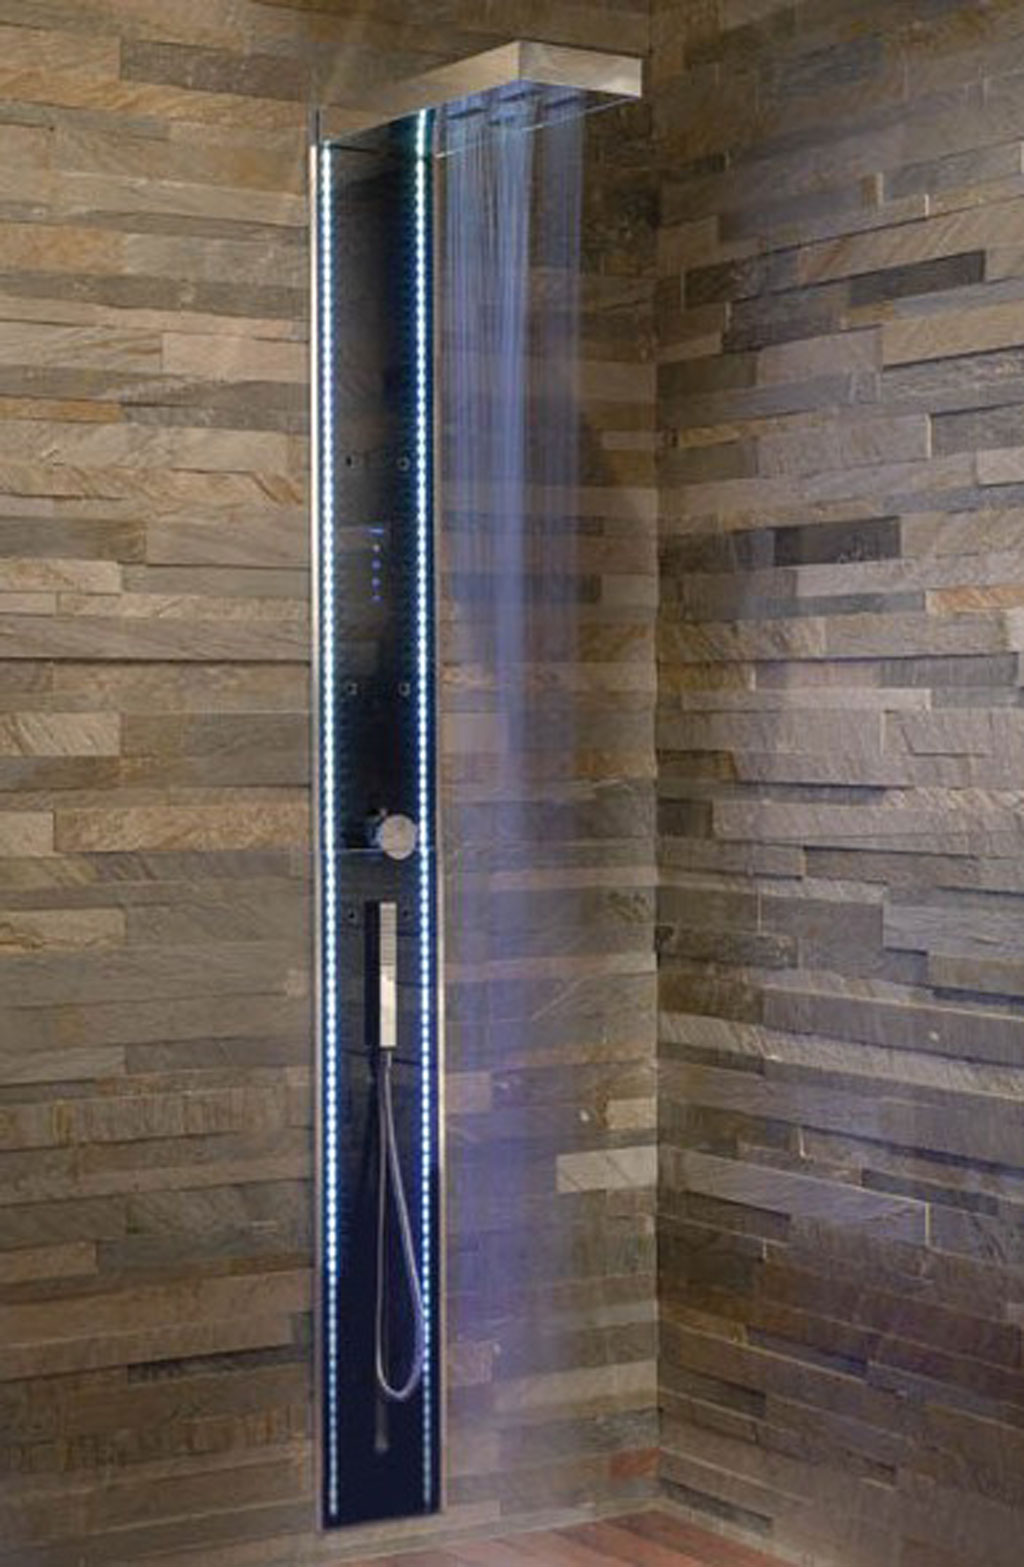 Modern Bathroom Tile Texture 28+ [ bathroom tile ideas for showers ] | 41 cool and eye catchy